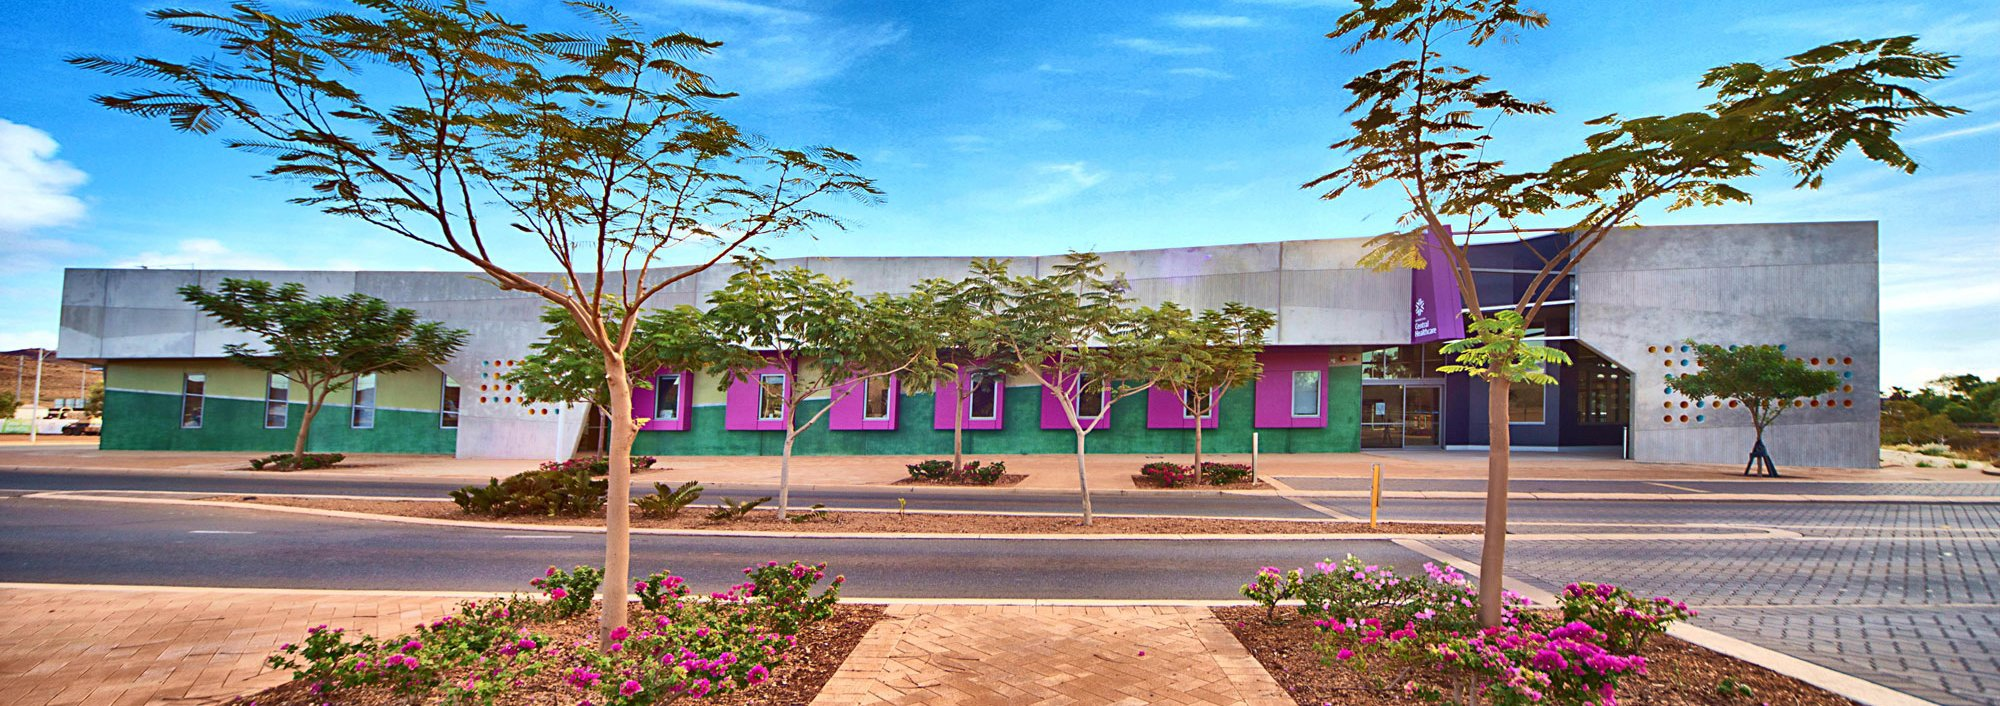 Outside view of Karratha Healthcare Clinic